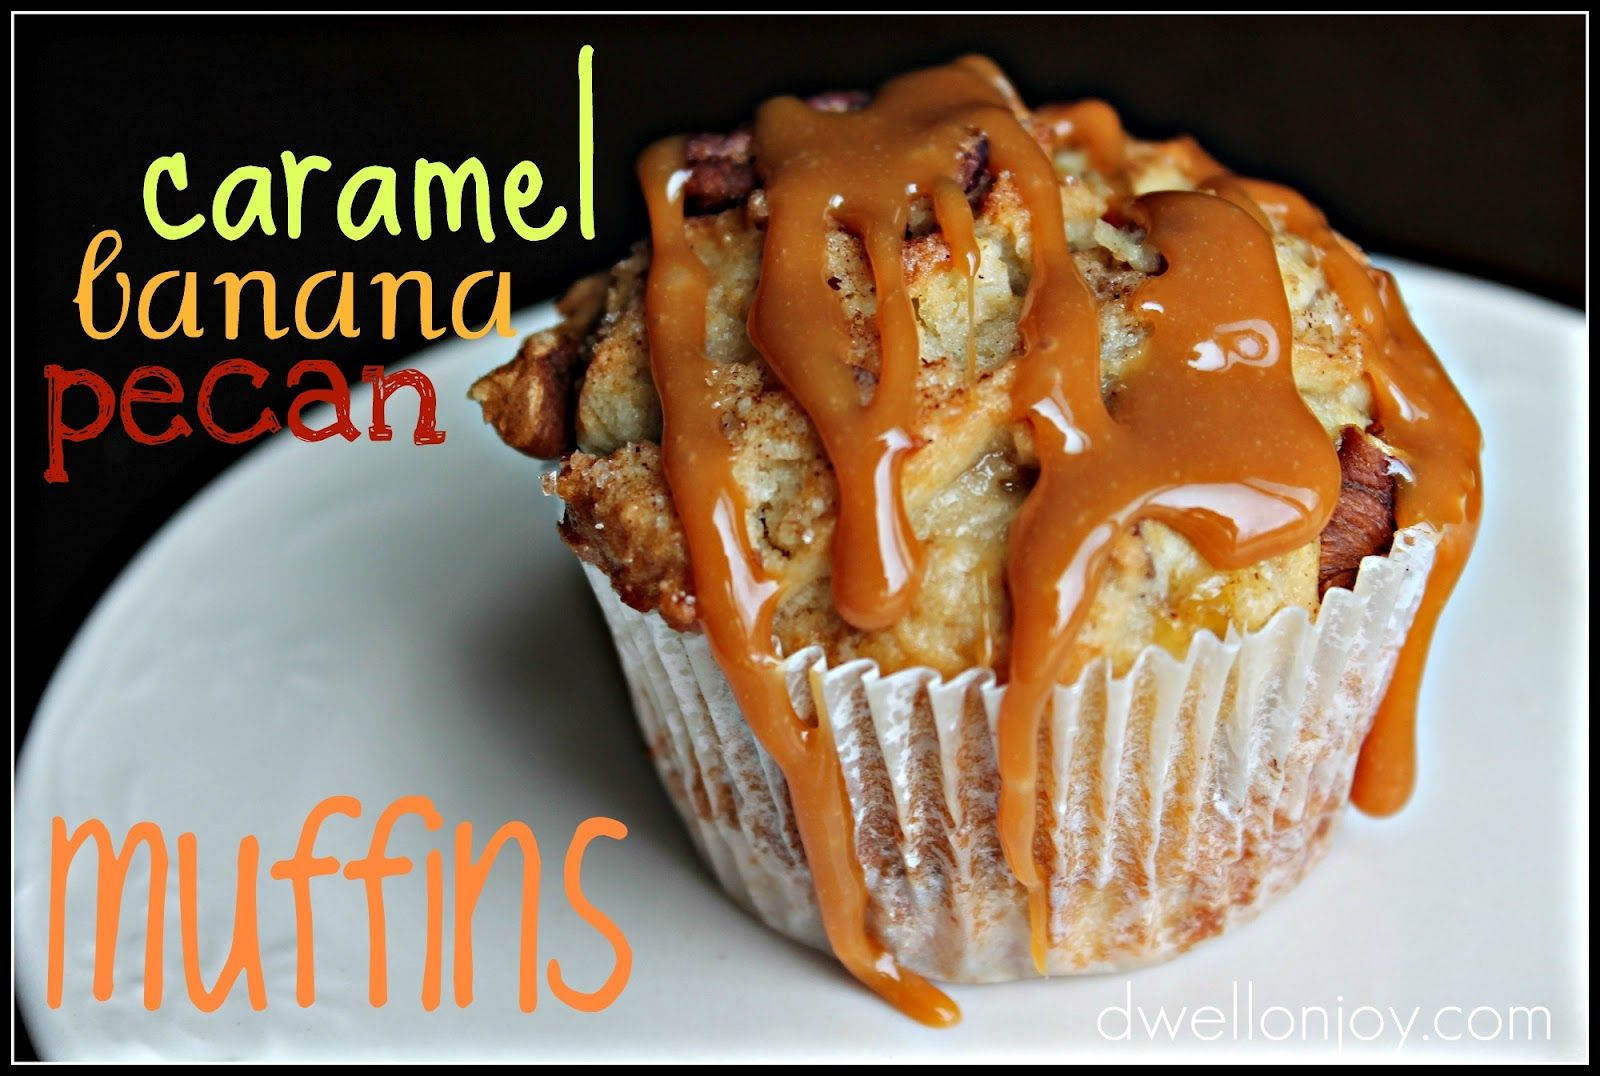 Caramel-Banana-Pecan Muffins  {you can omit the caramel if you'd like more of a breakfast muffin, but who would want to do that?!}